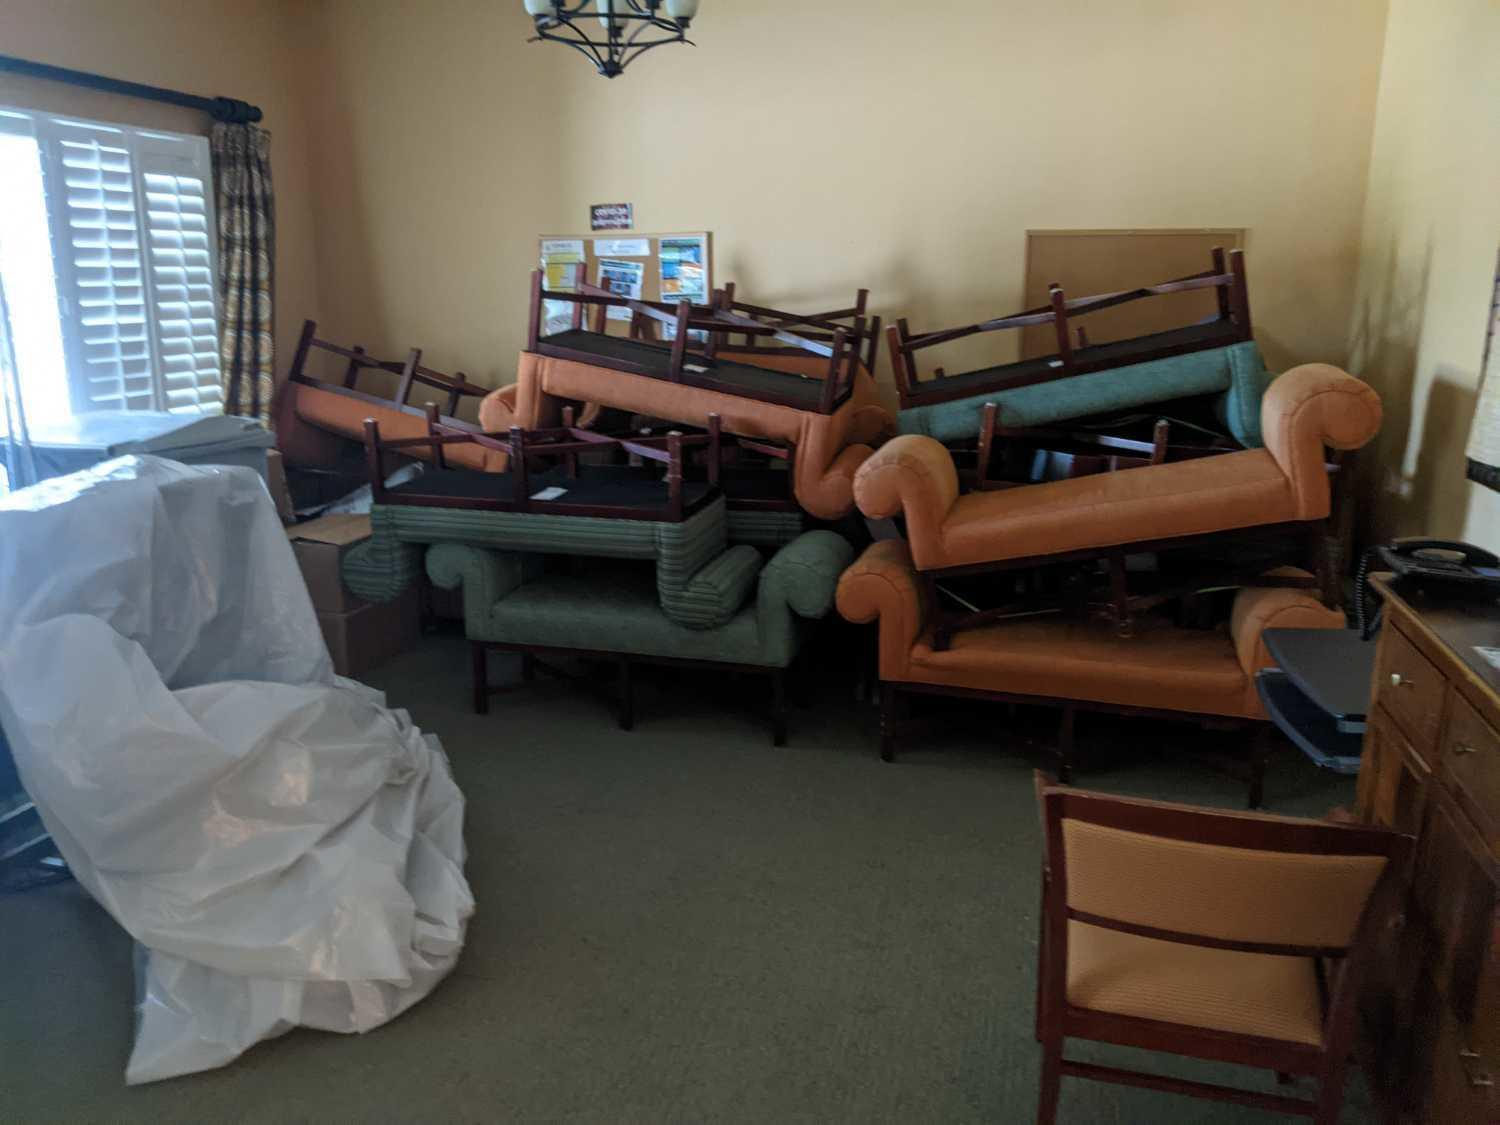 Office Cleanout in Lutz, FL! - Before Photo